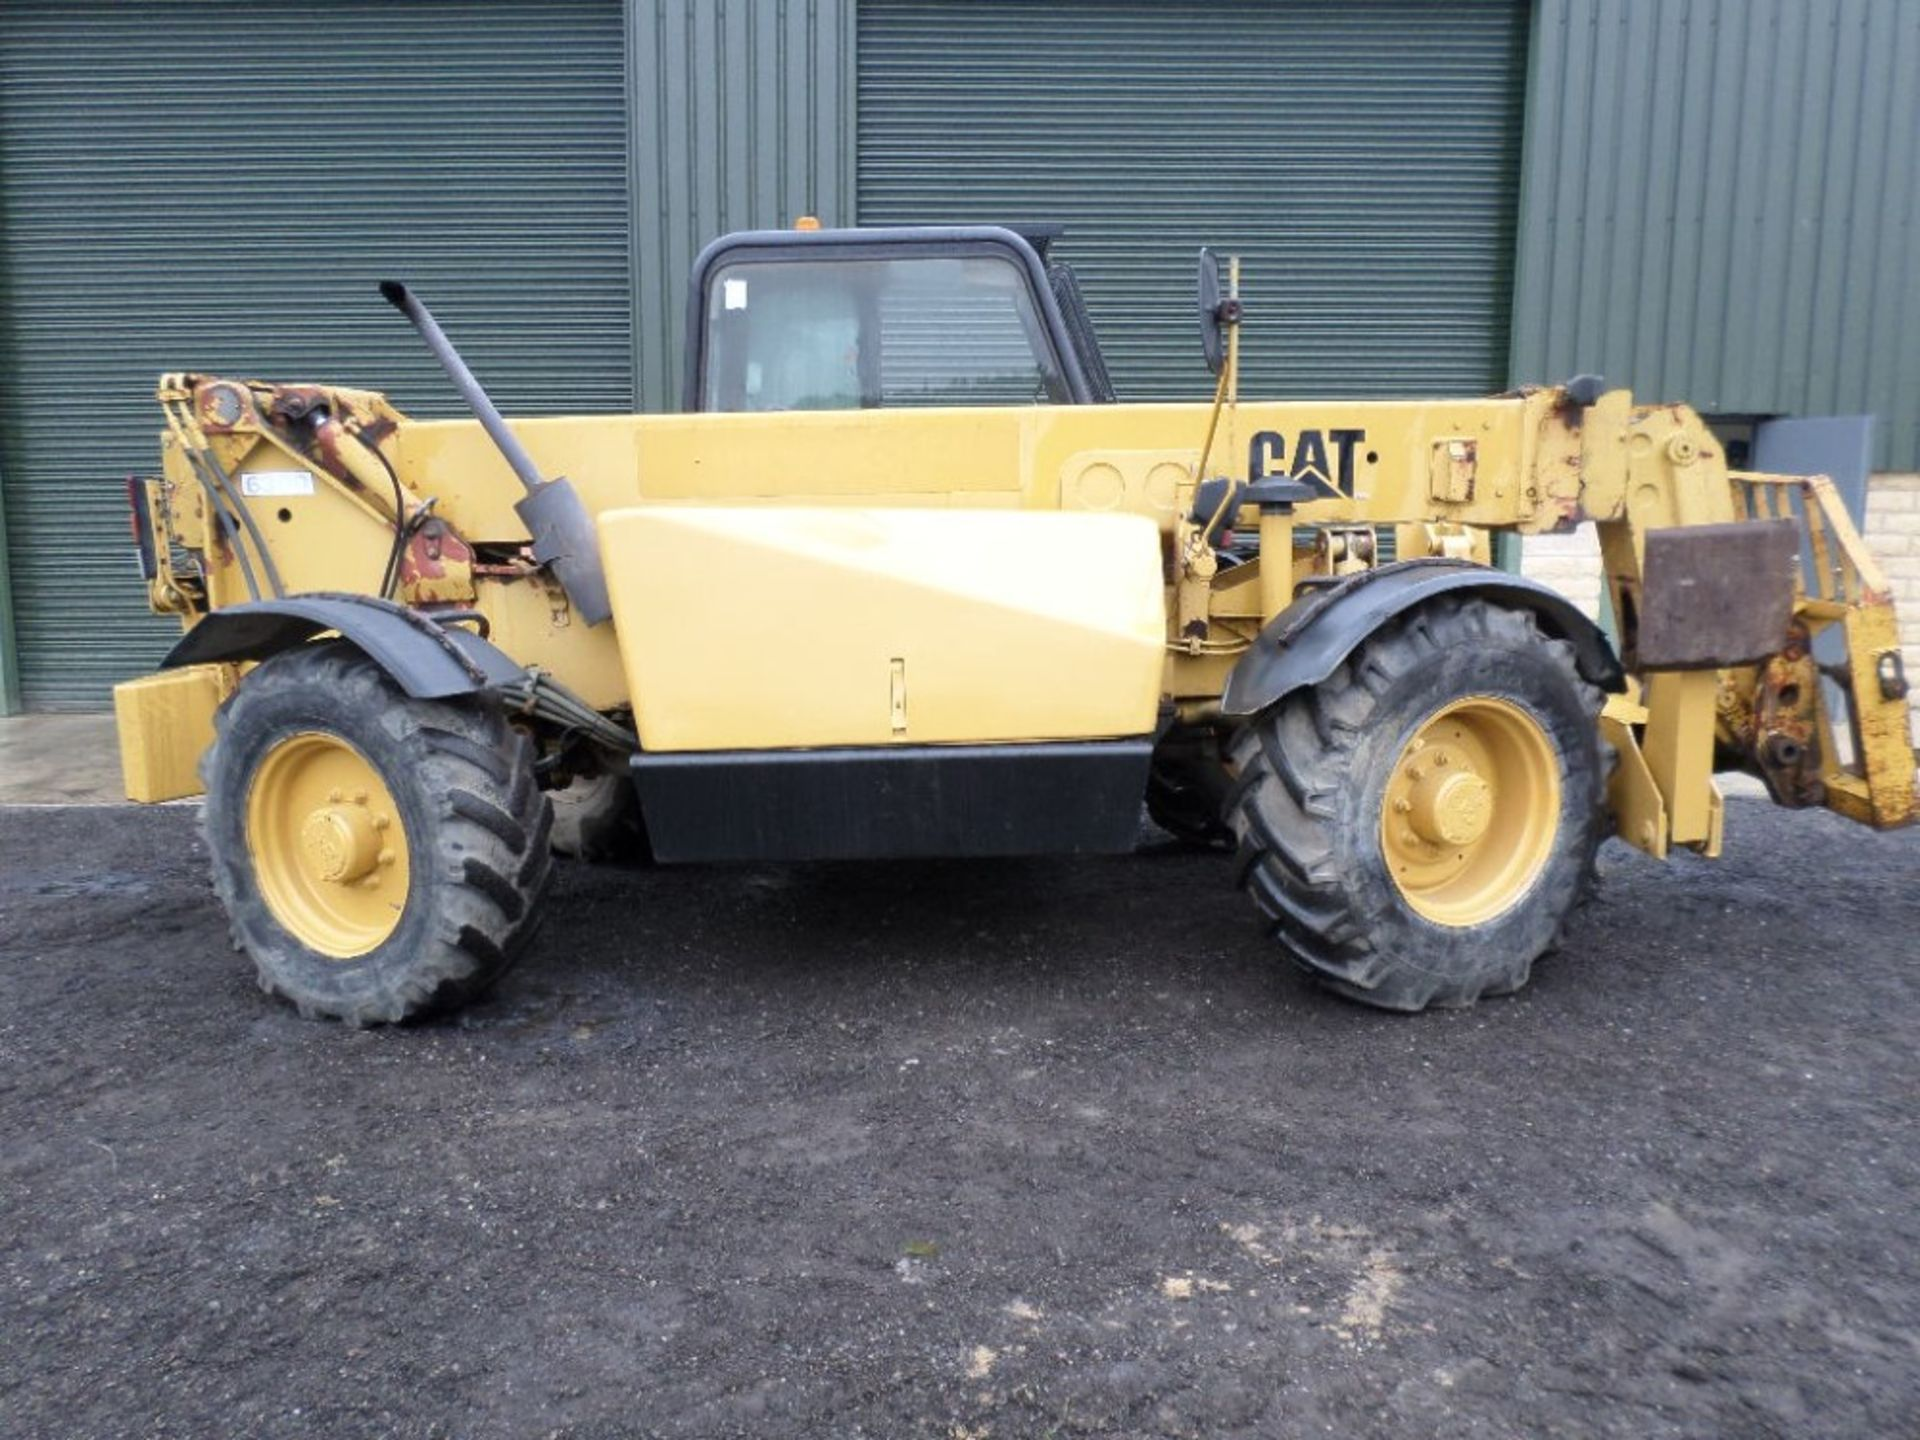 1999 CAT TH63 TELEPORTER (LOCATON SHEFFIELD) 5612 HOURS (RING FOR COLLECTION DETAILS) [+ VAT] - Image 11 of 13